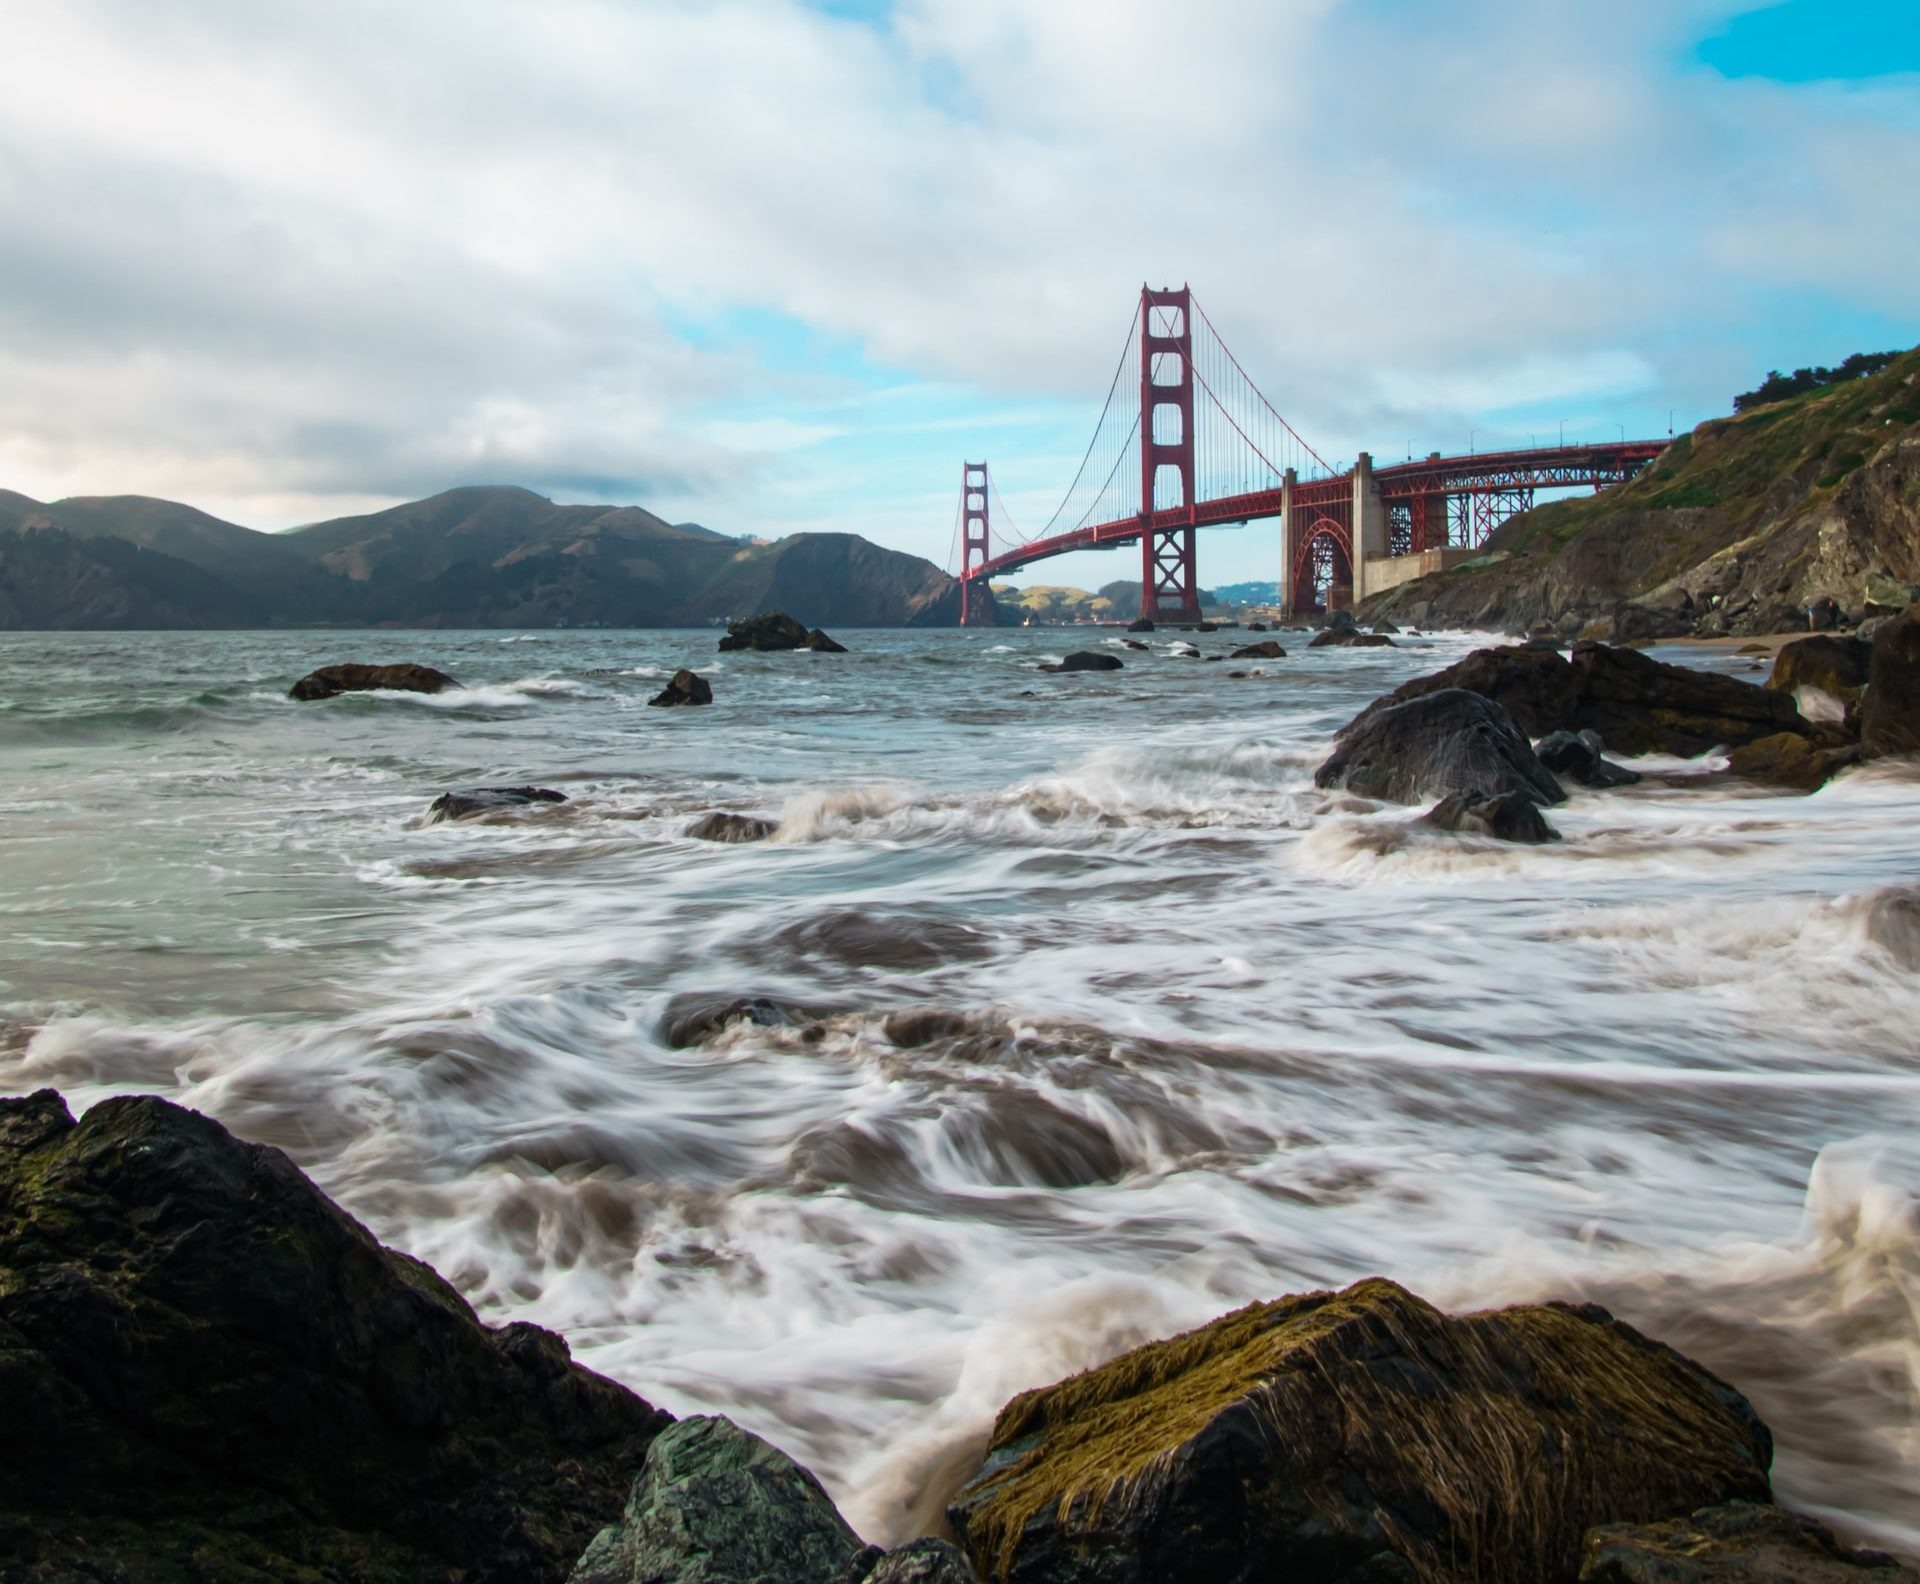 Golden Gate Bridge with a rocky beach in the foreground